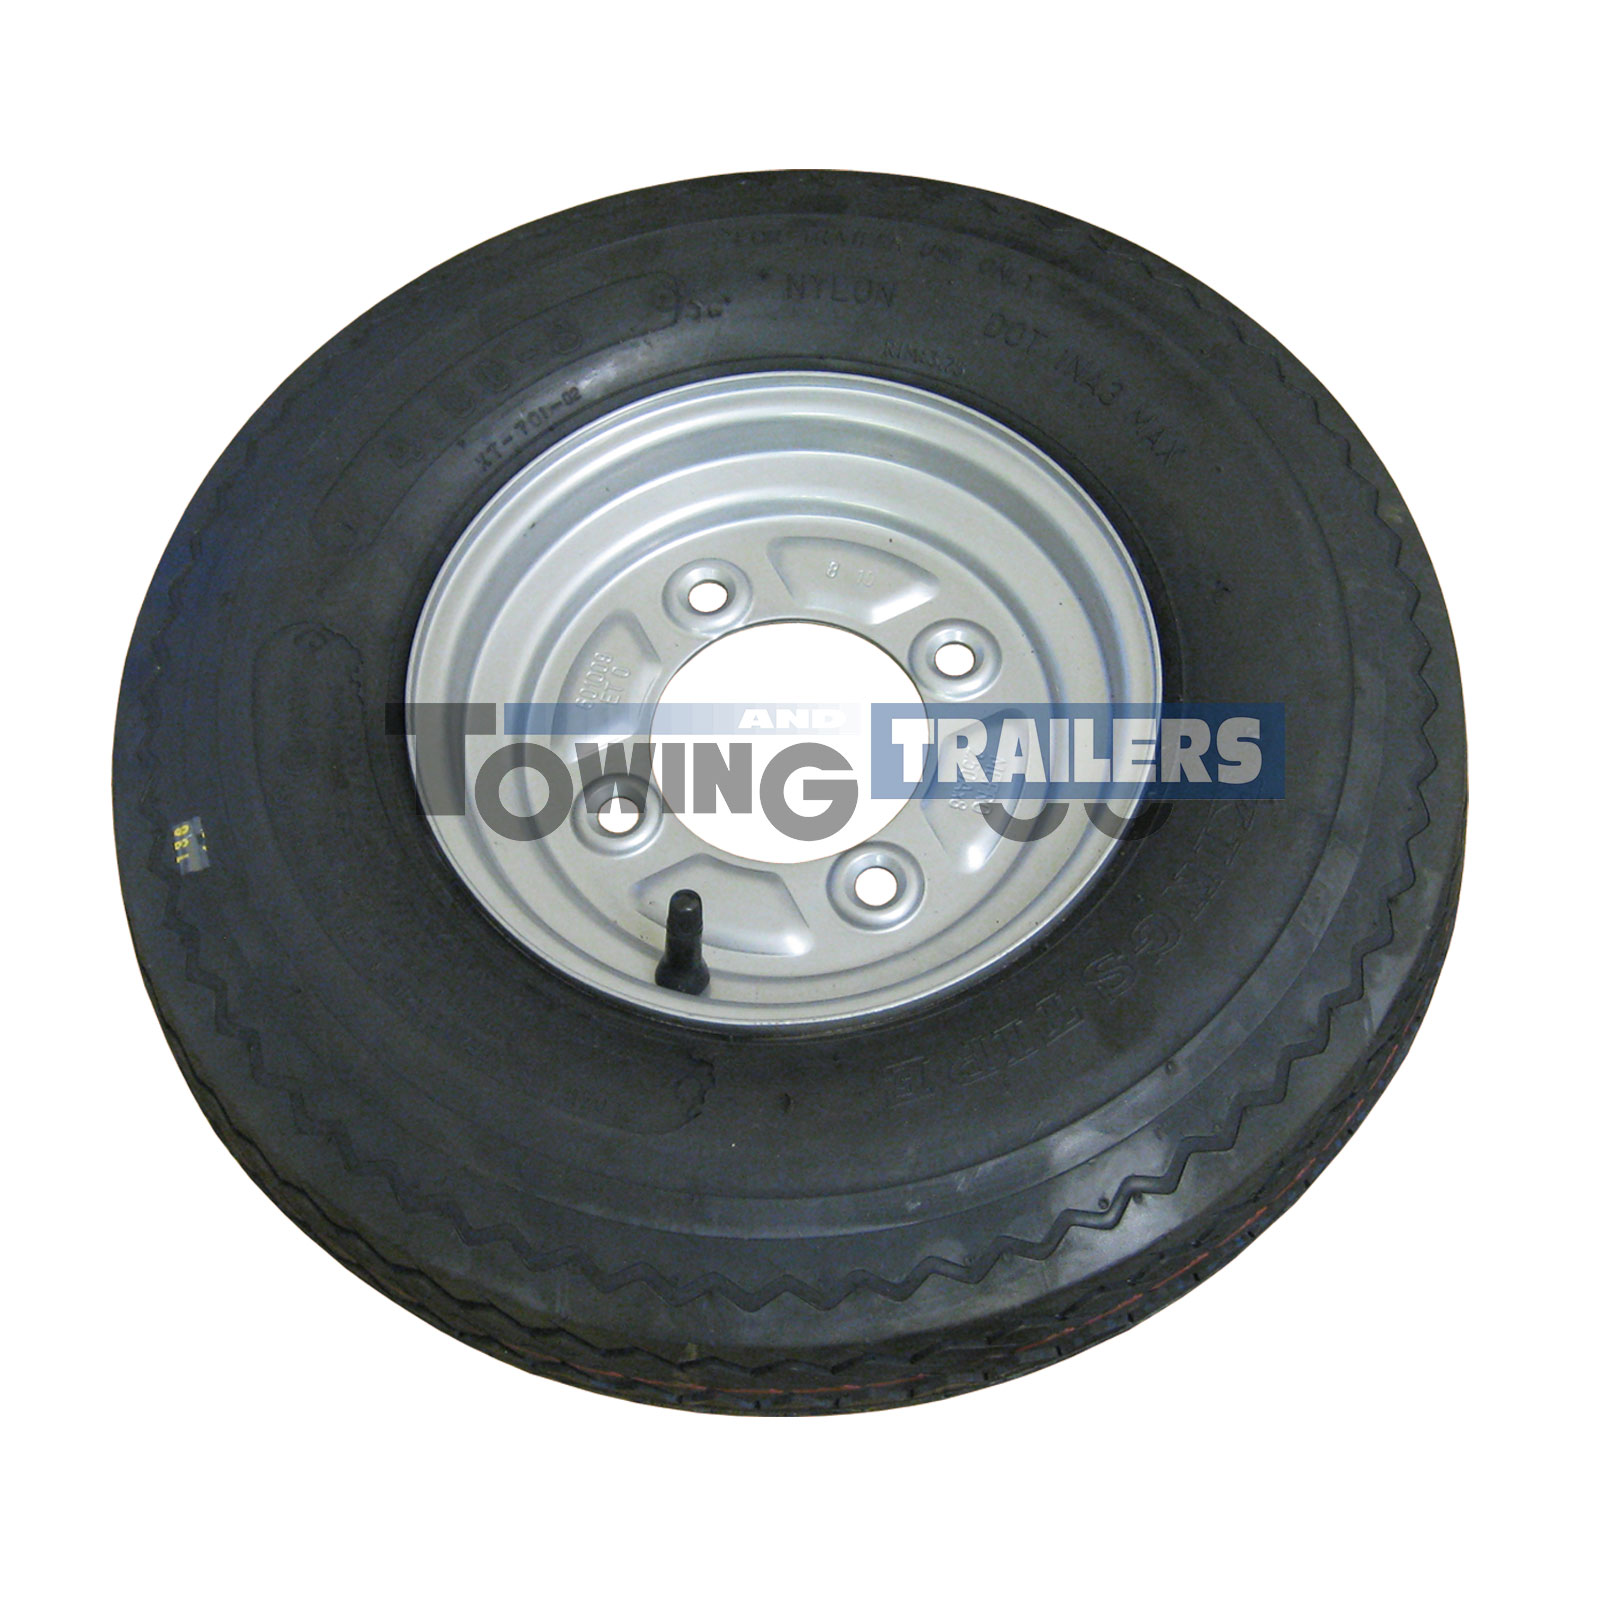 Erde 122 spare parts towing and trailers ltd 4008 4 ply 62m trailer tyre on 4 stud x 115mm pcd et0 wheel rim asfbconference2016 Gallery